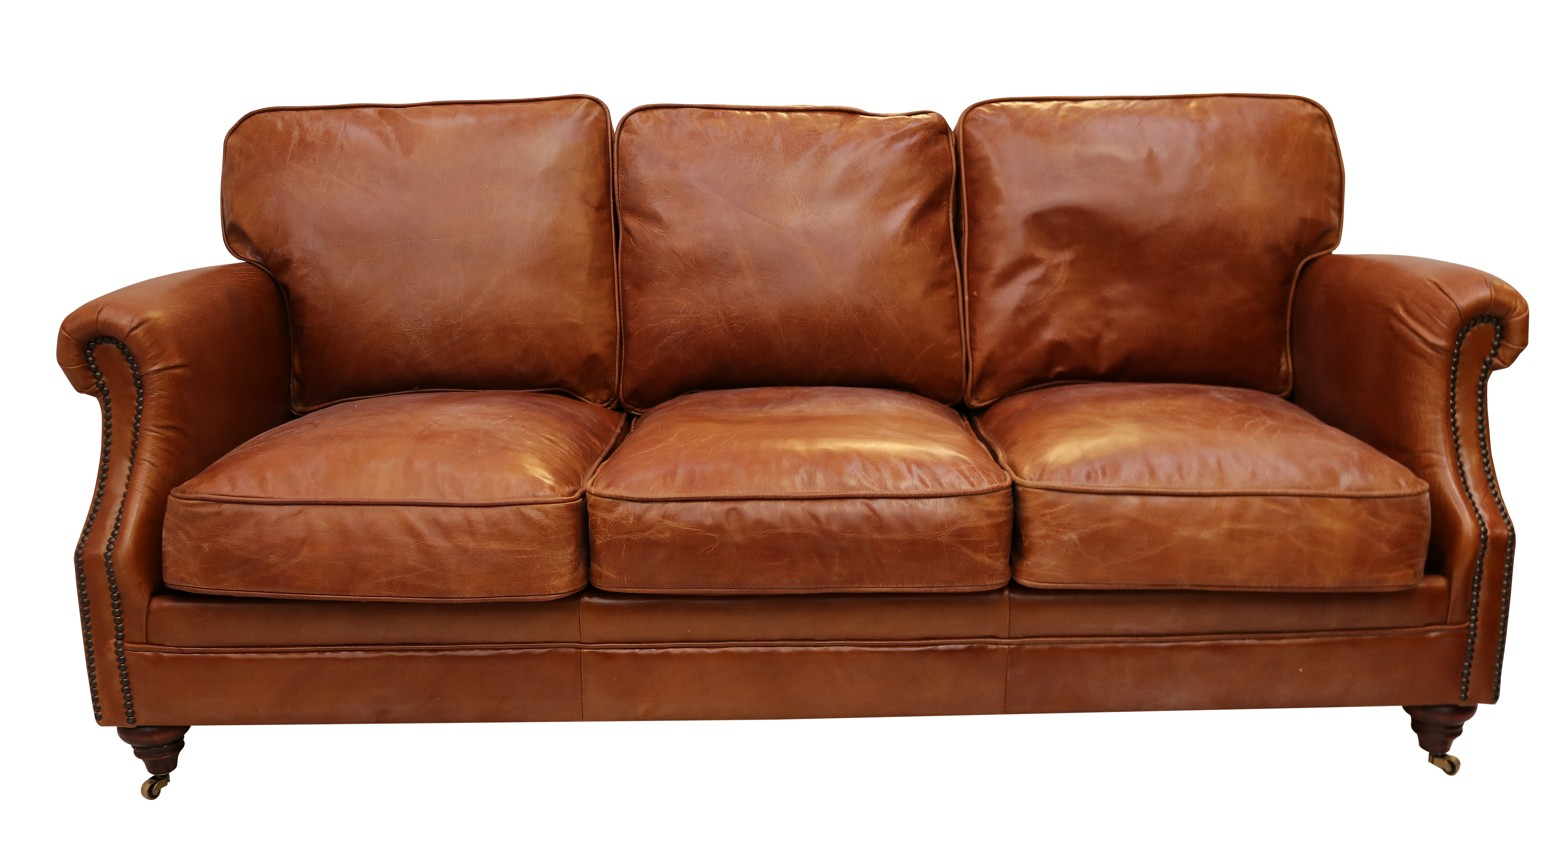 Cool Luxury Vintage Distressed Leather 3 Seater Settee Sofa Tan Dailytribune Chair Design For Home Dailytribuneorg